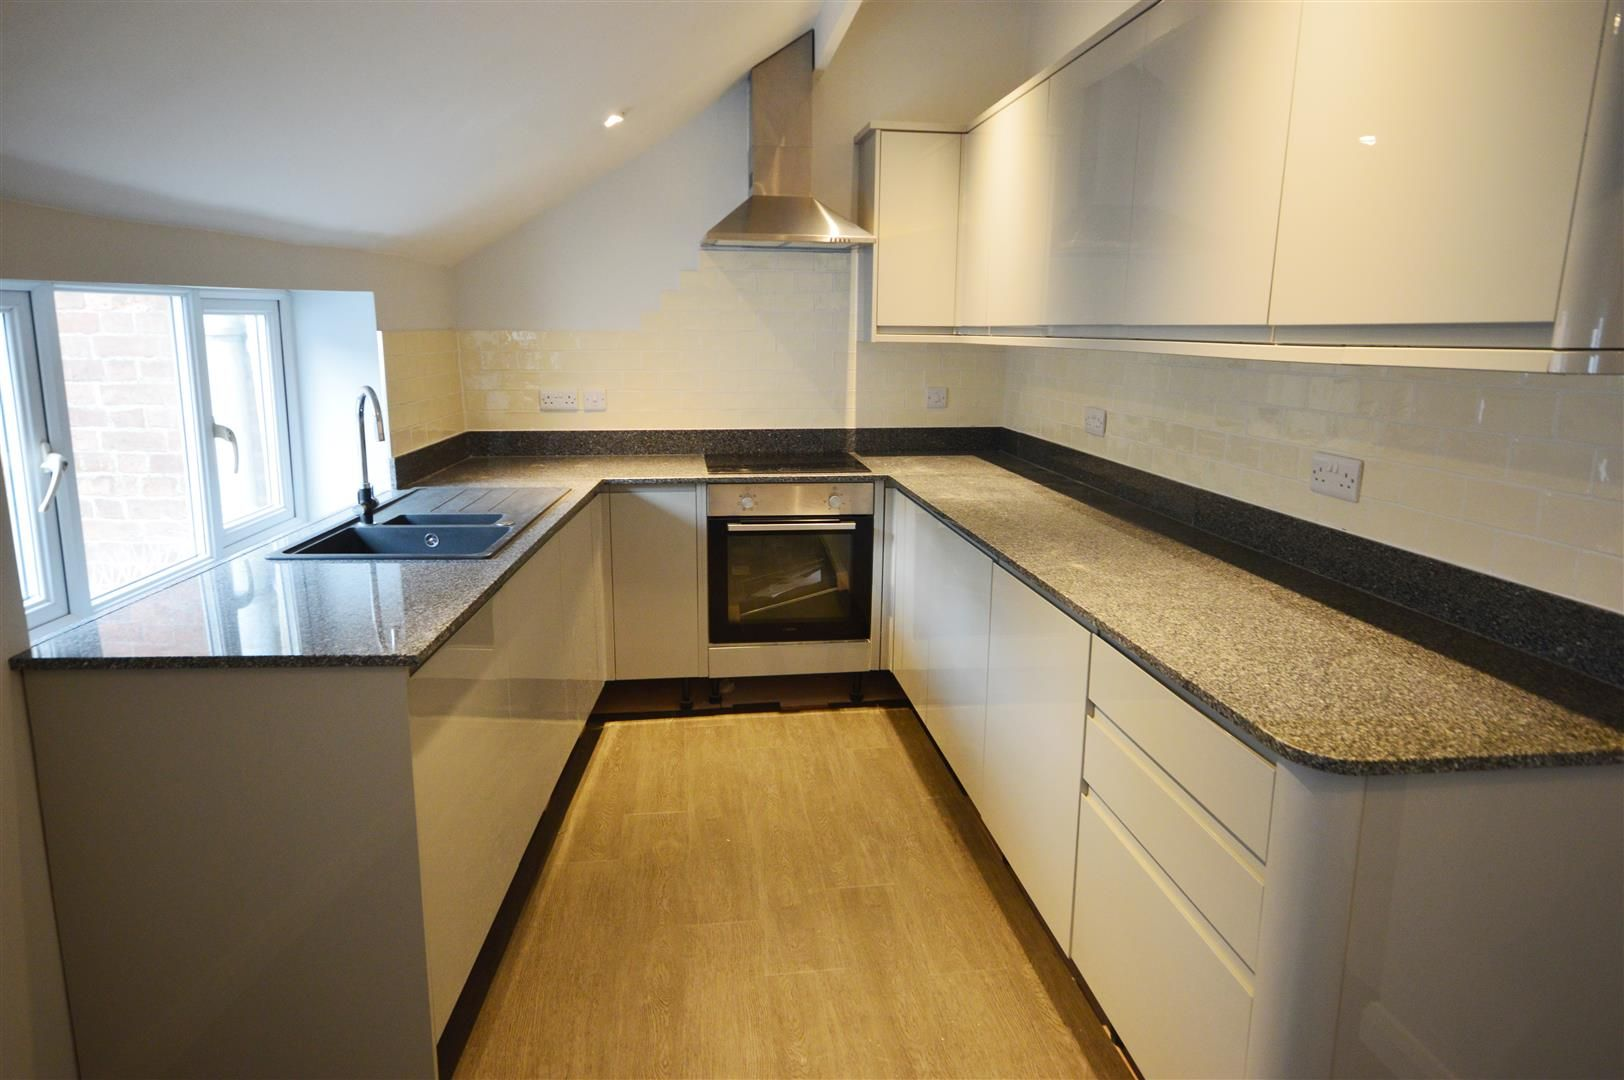 2 bed flat to rent in Leominster, HR6